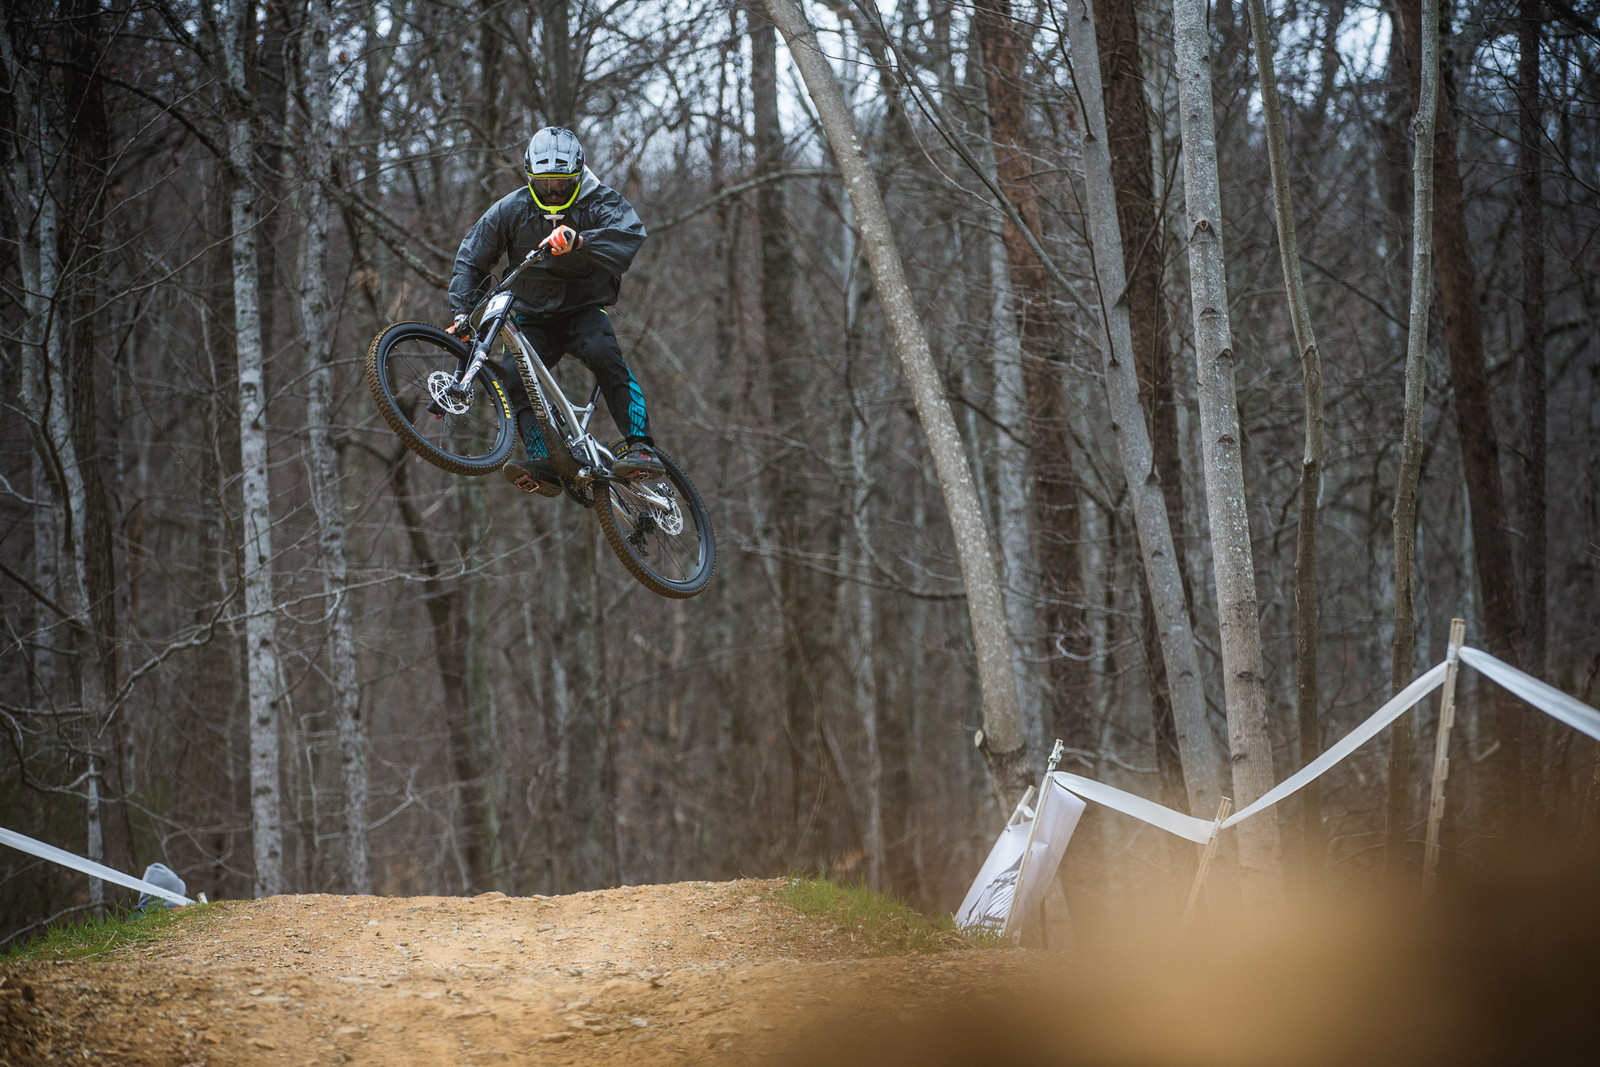 50 Photos from Race Day at the Windrock Pro GRT - Luca Cometti Hucks - 50 Photos from Race Day at the Windrock Pro GRT - Mountain Biking Pictures - Vital MTB